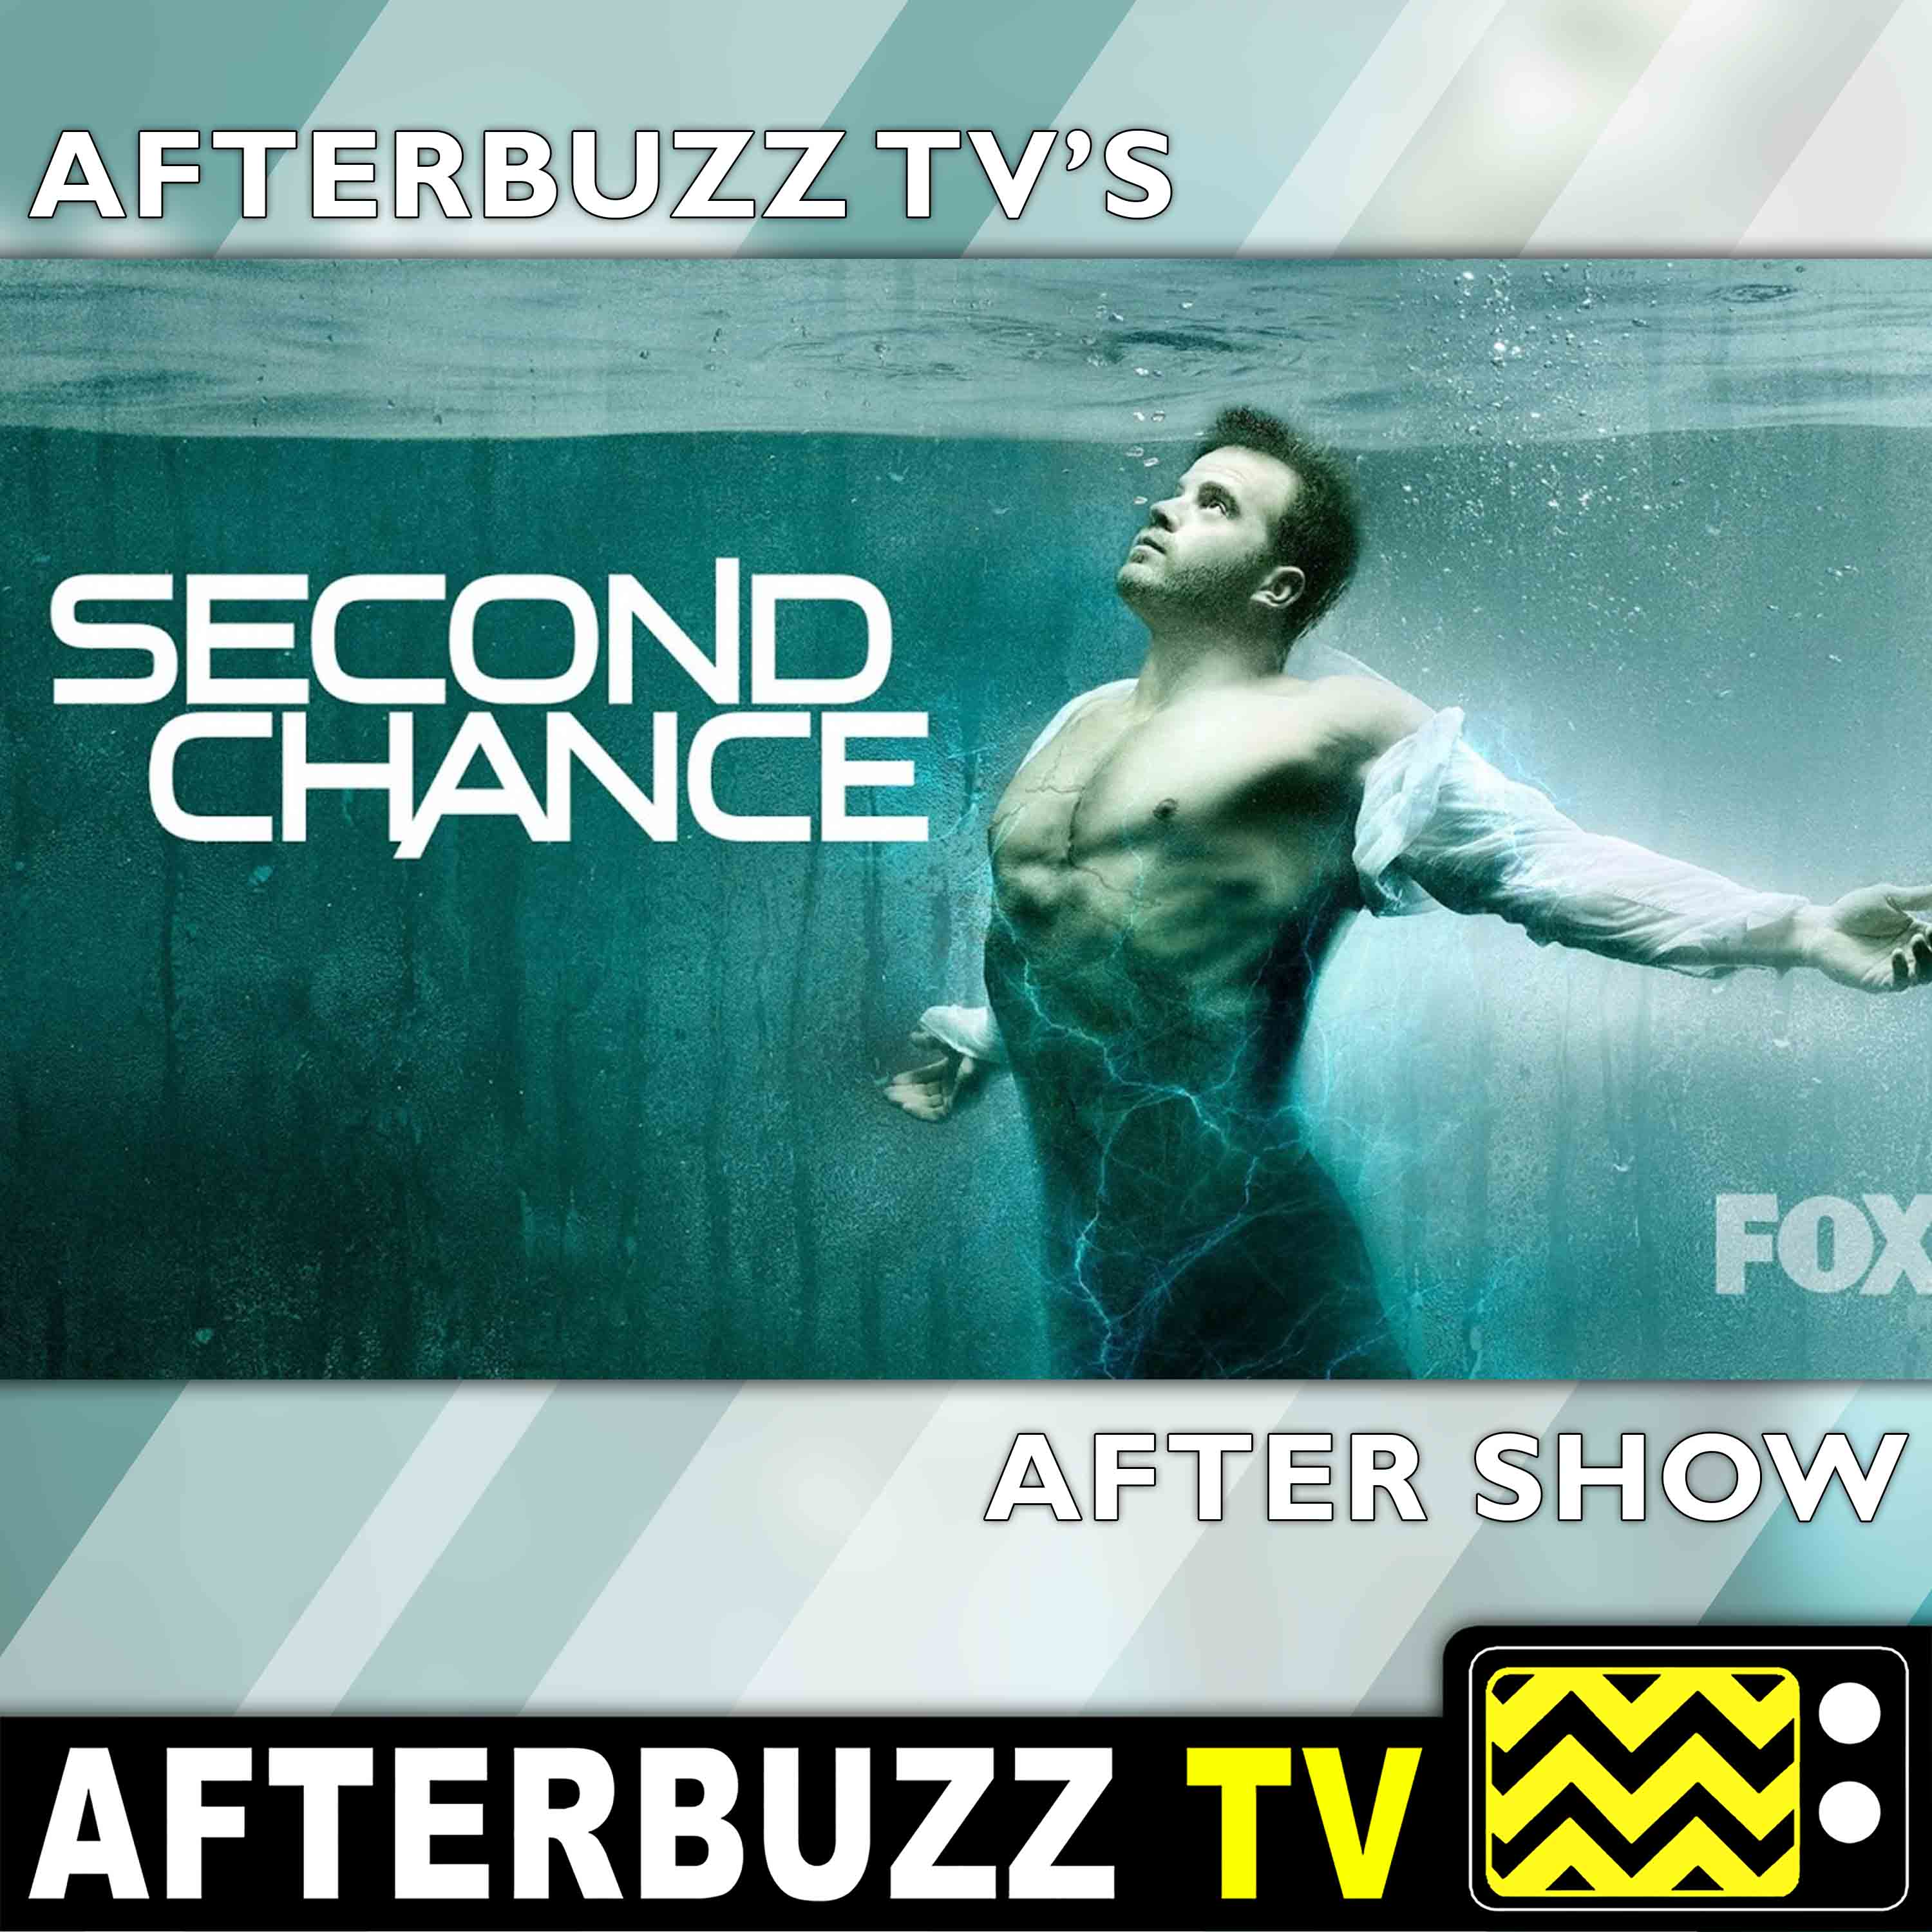 Second Chance Reviews and After Show